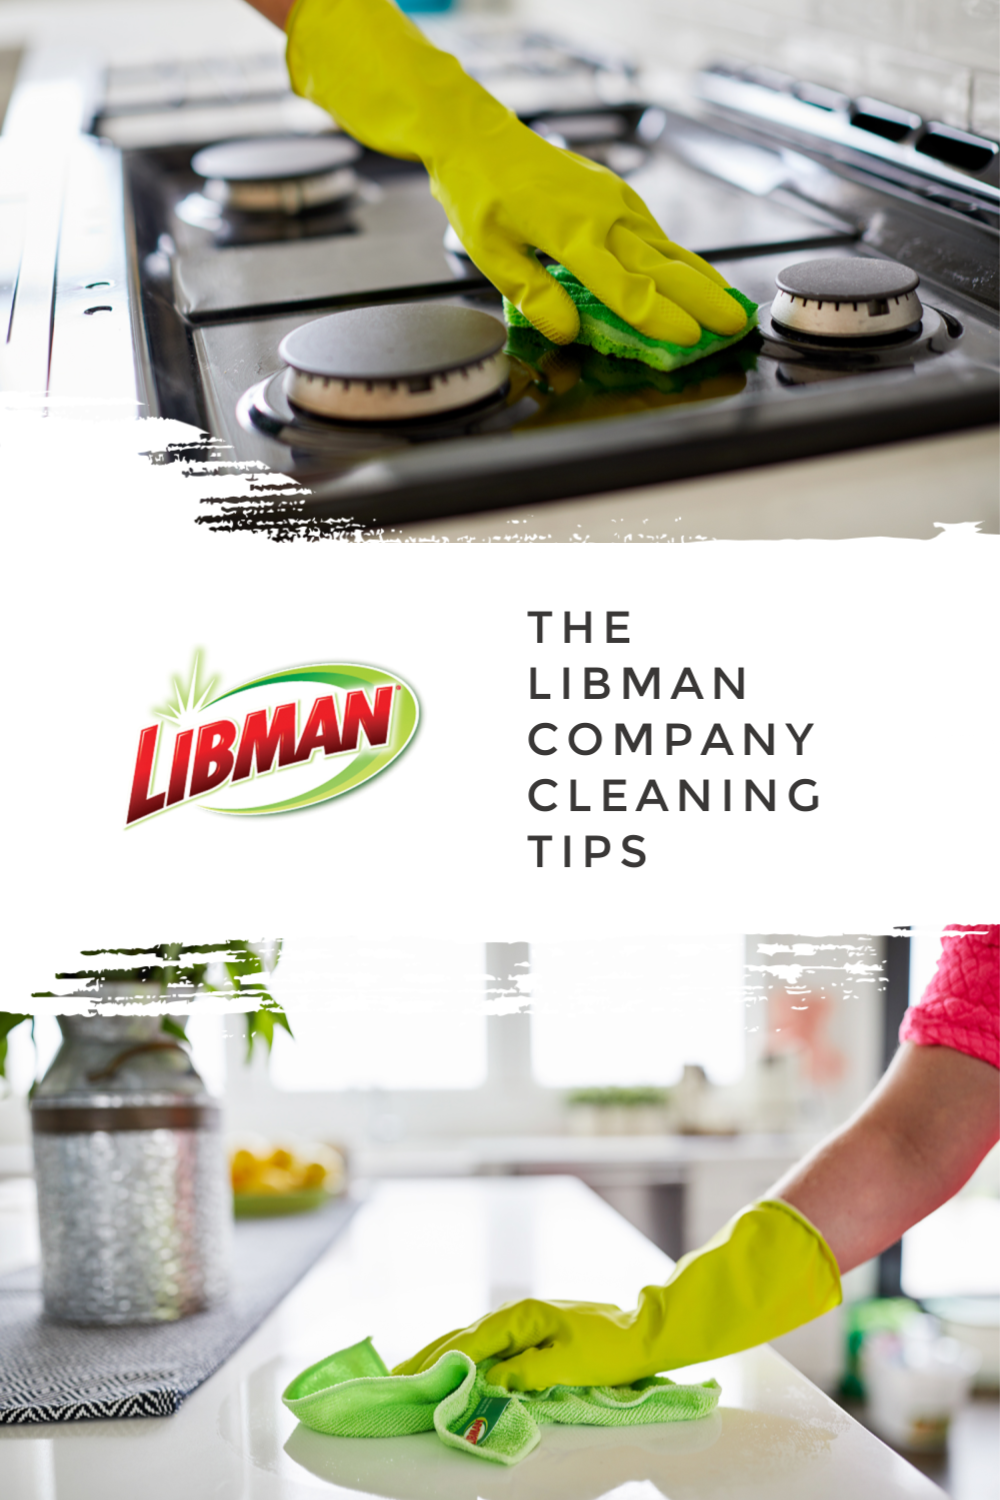 The Libman Company Cleaning Tips for Back to School #Libman #BacktoSchool #CleaningTips